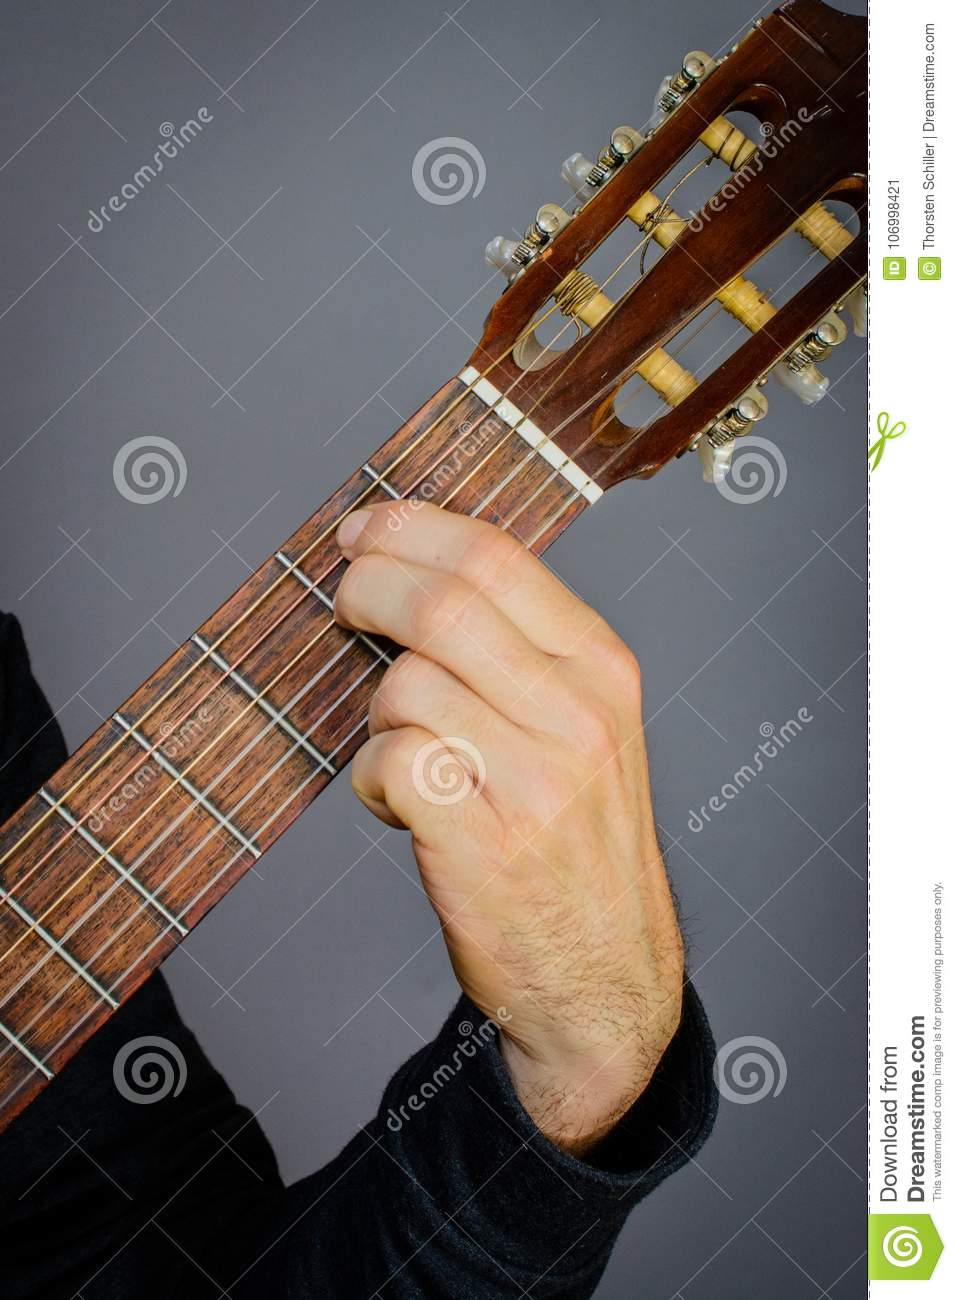 E Minor Chord Played By Guitarist On Classical Acoustic Guitar Stock